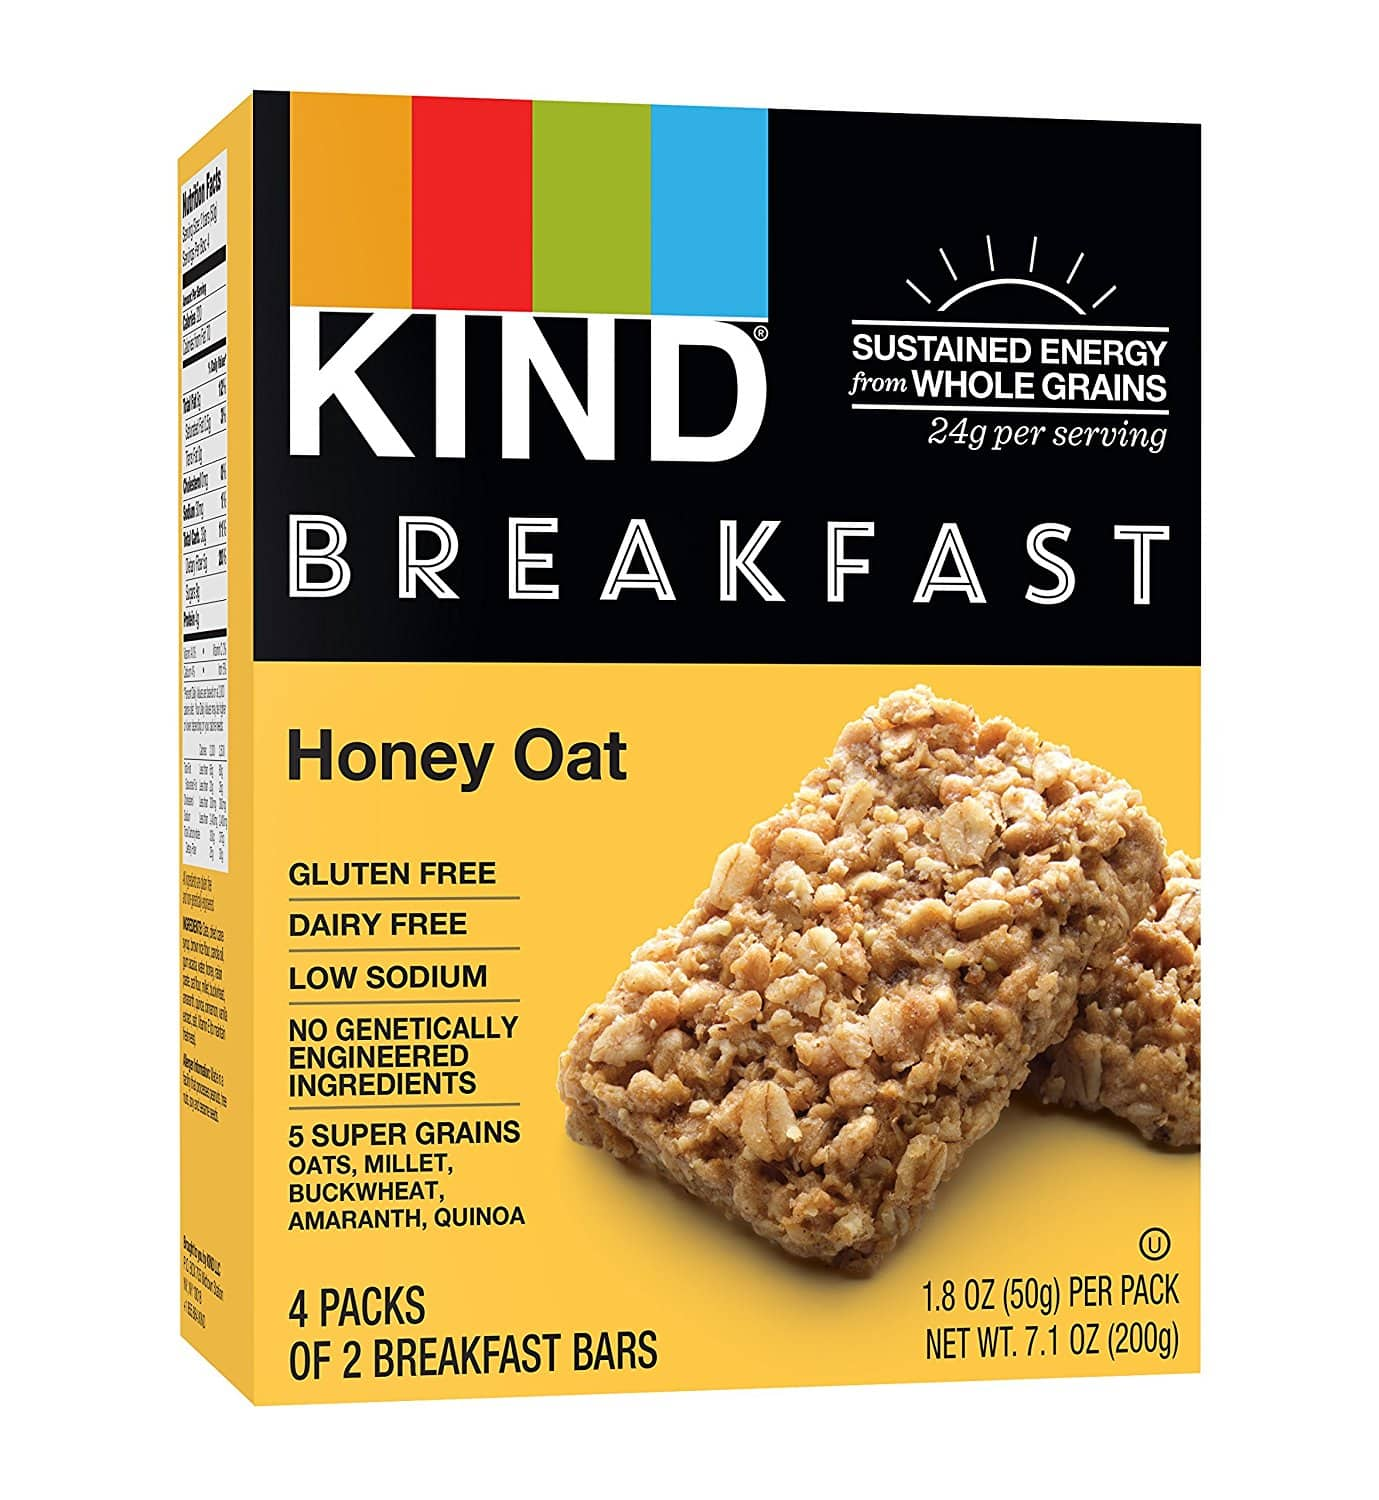 32-Count 1.8-oz KIND Breakfast Bars (Honey Oat) $13.01 w/ S&S + Free S/H (prime only)